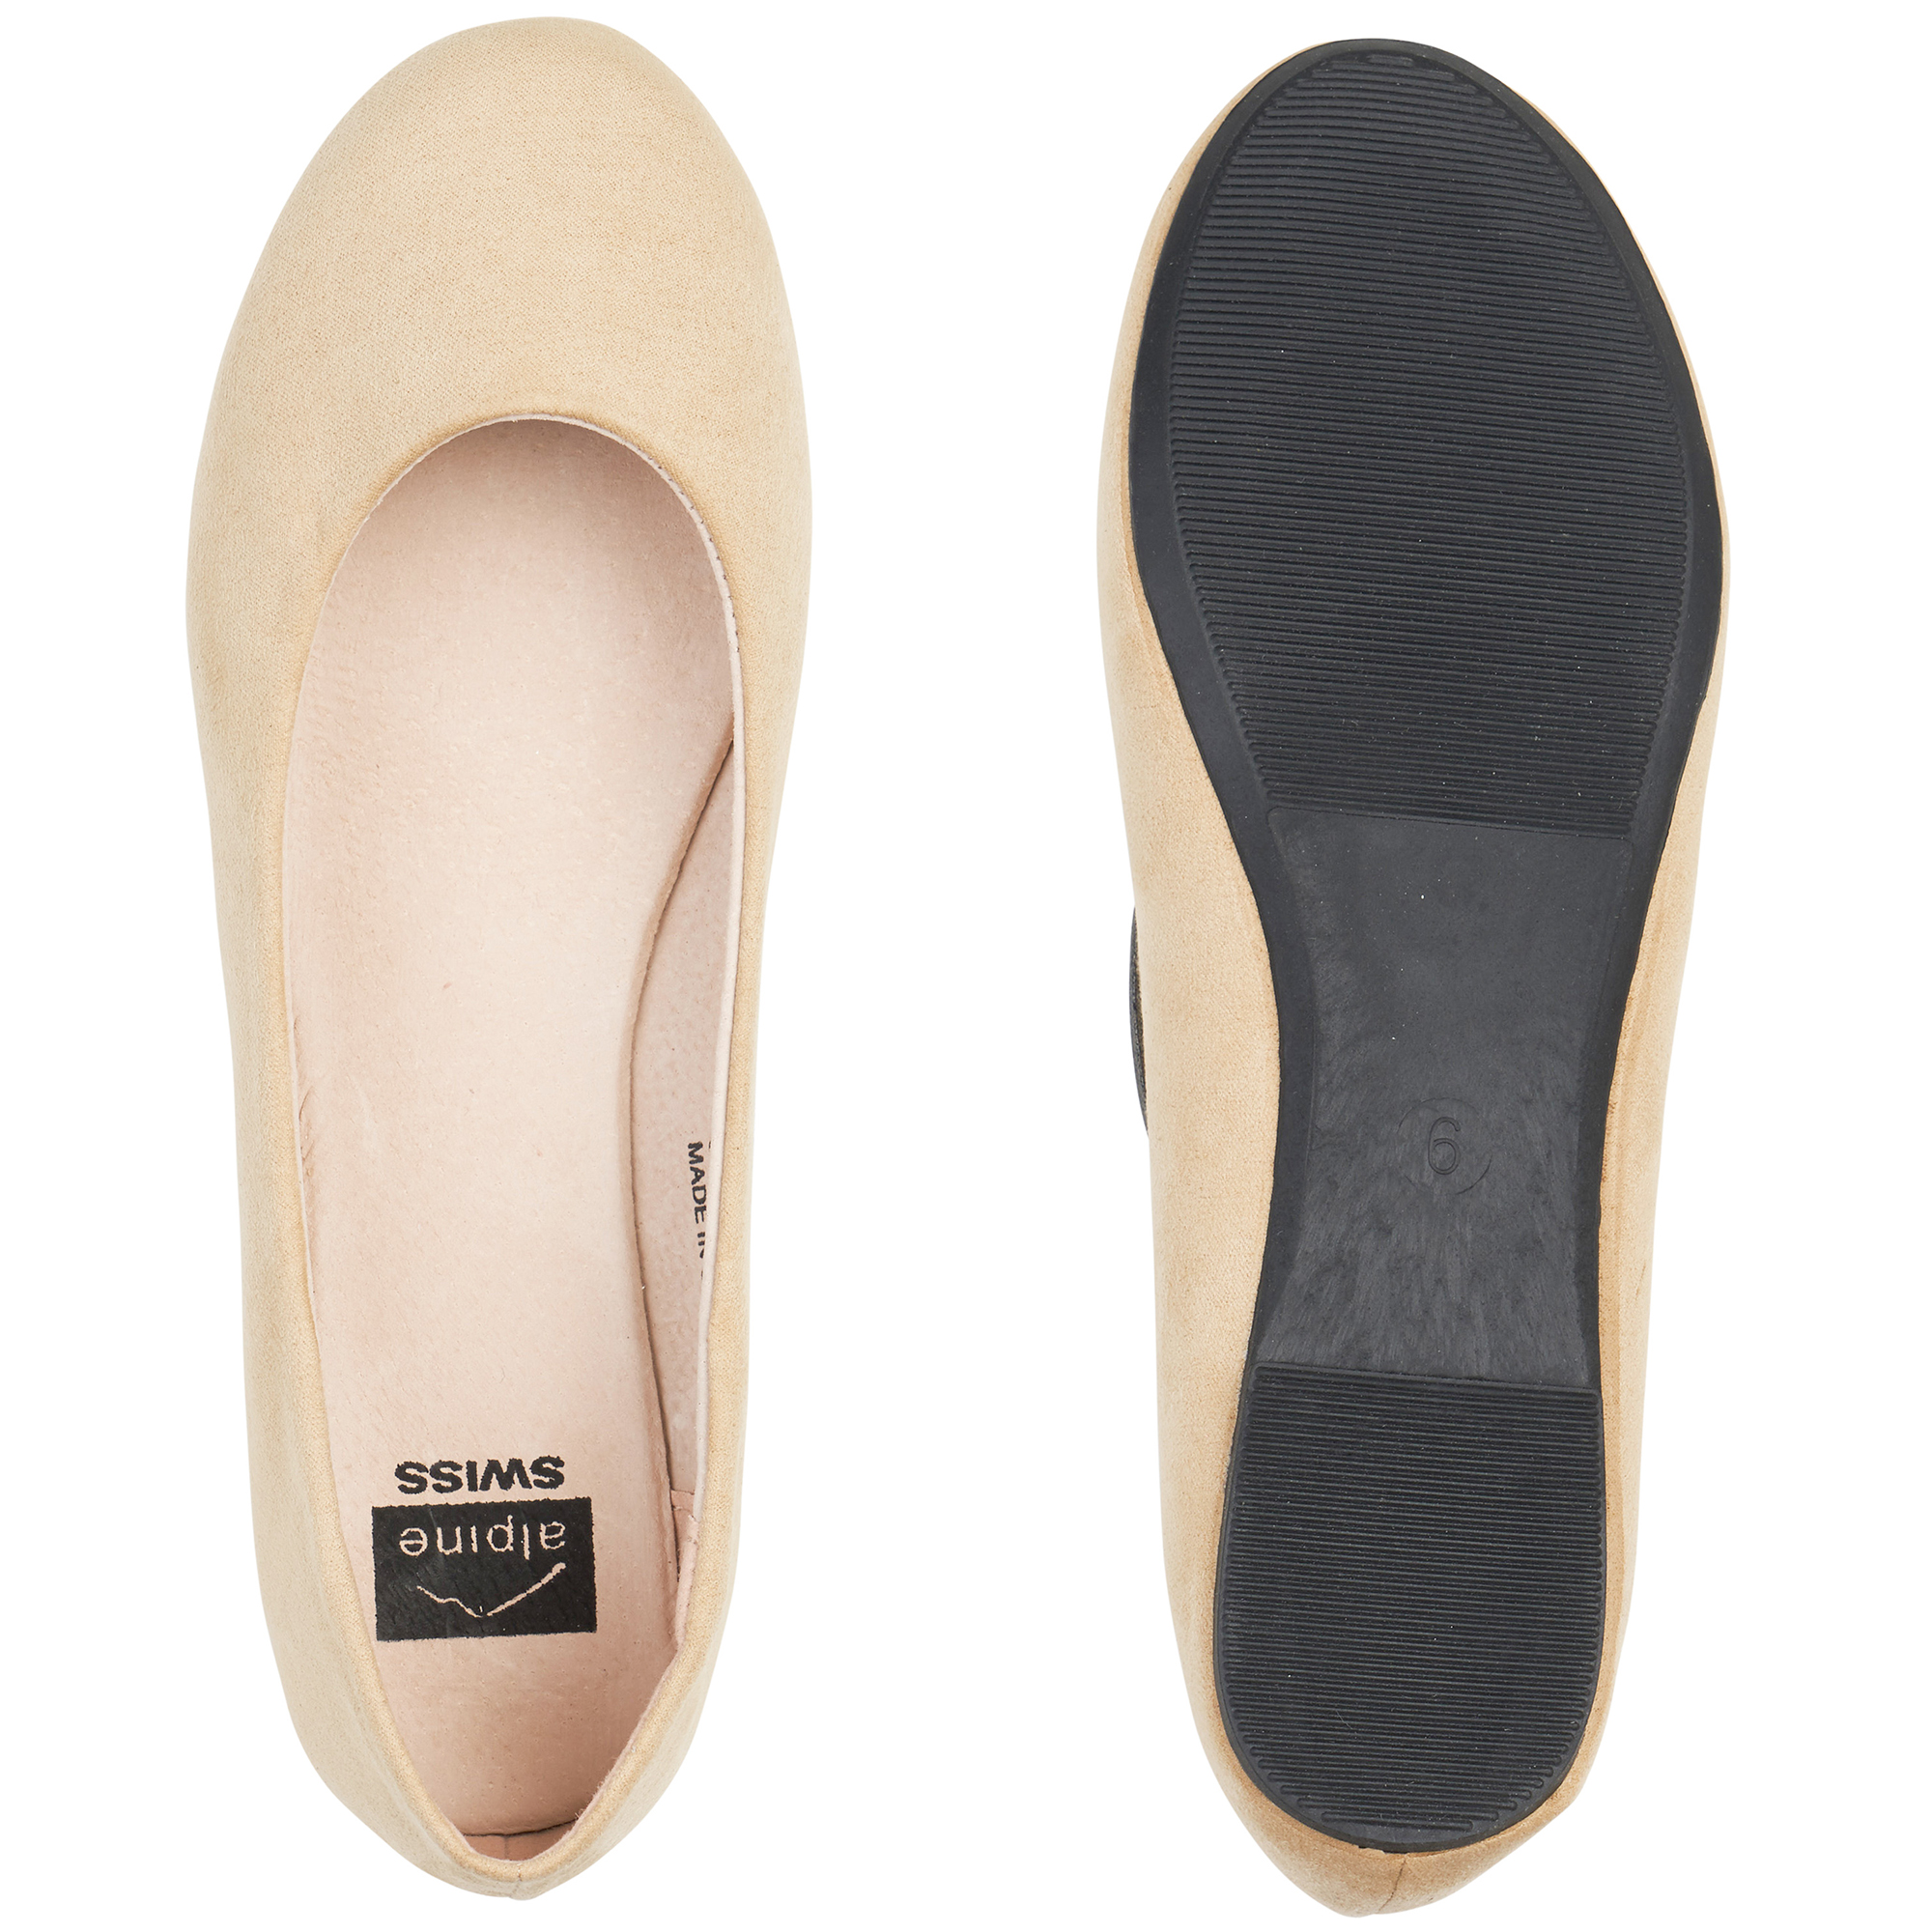 Alpine-Swiss-Pierina-Womens-Ballet-Flats-Leather-Lined-Classic-Slip-On-Shoes thumbnail 14